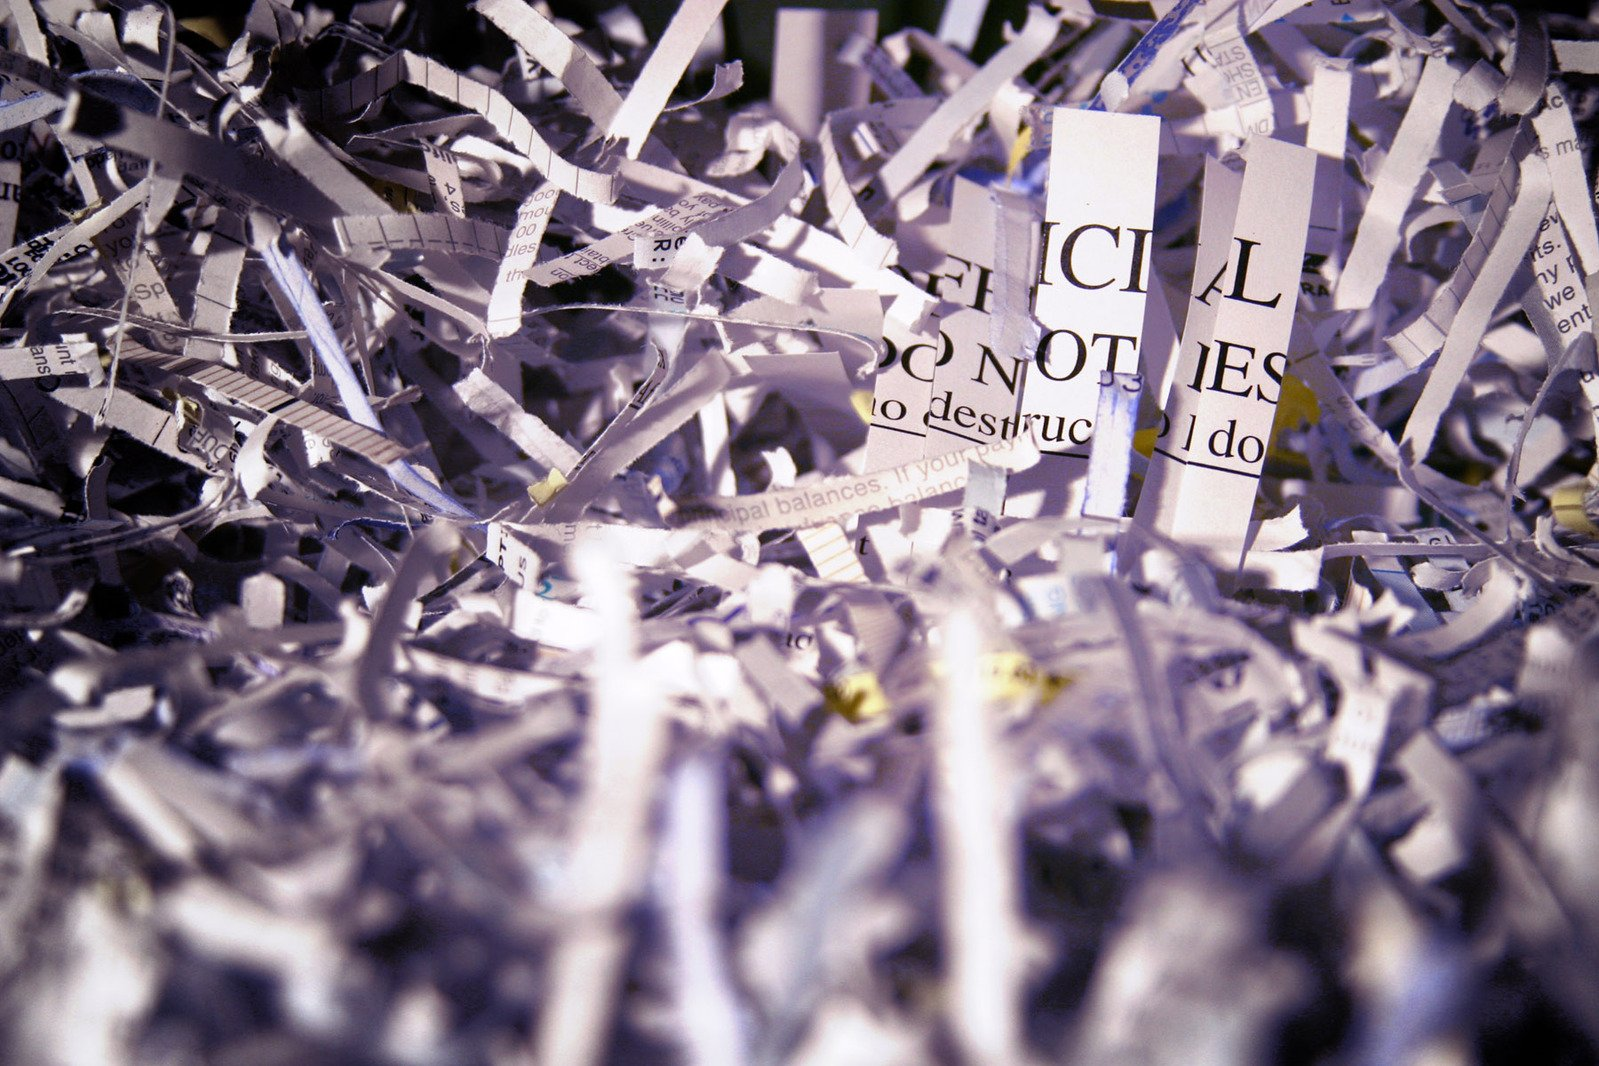 Some shredded paper